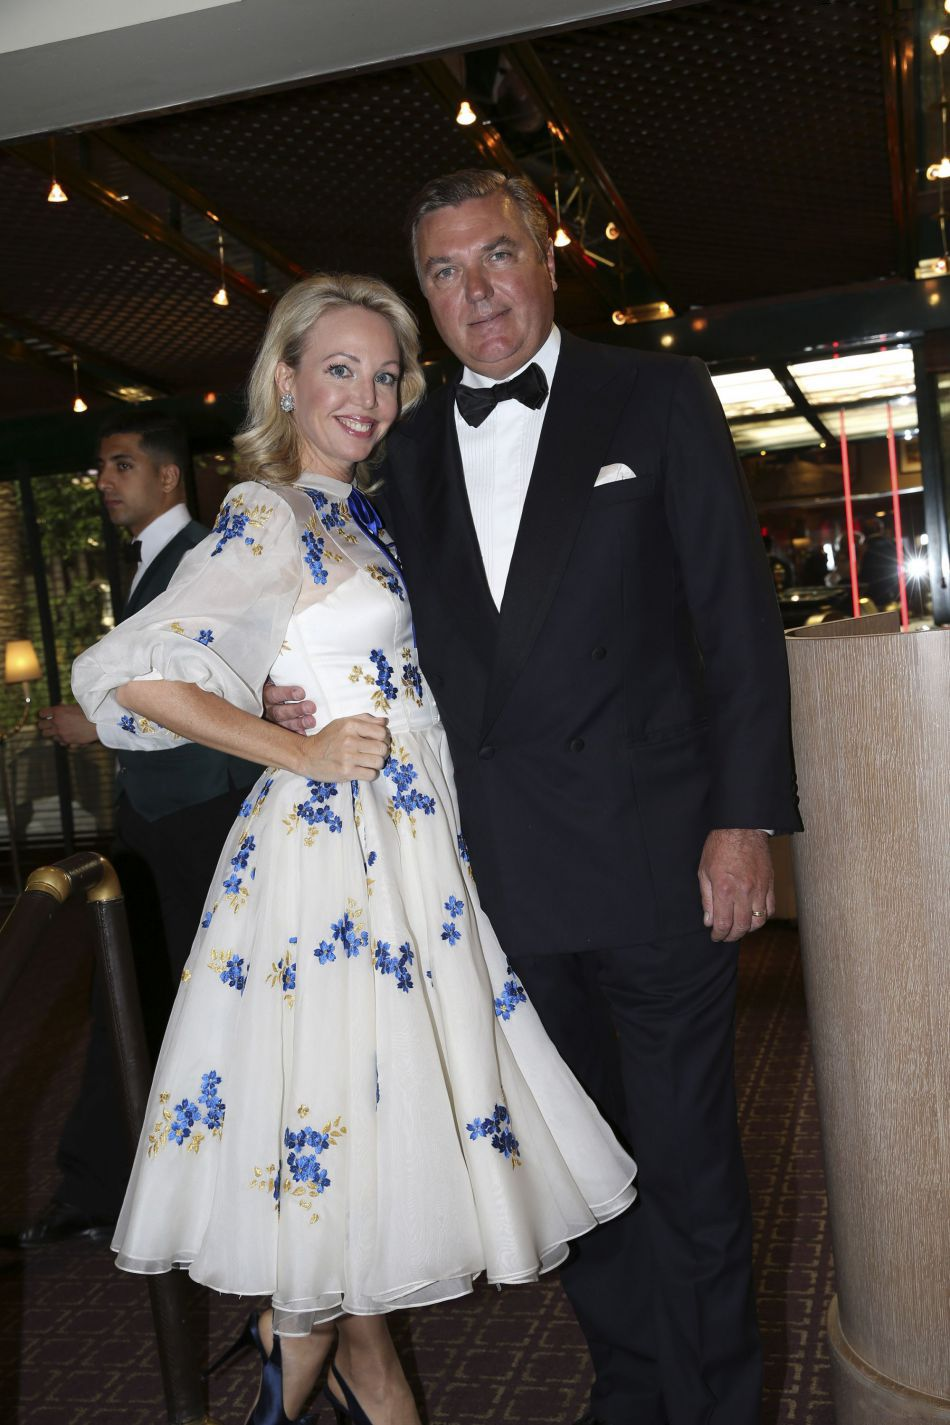 Prince Carlo of Bourbon-Two Sicilies and Princess Camilla of Bourbon-Two Sicilies at a reception in honour of Desmond Tutu at the headquarters of the automobile club de Monaco, 05.06.2014